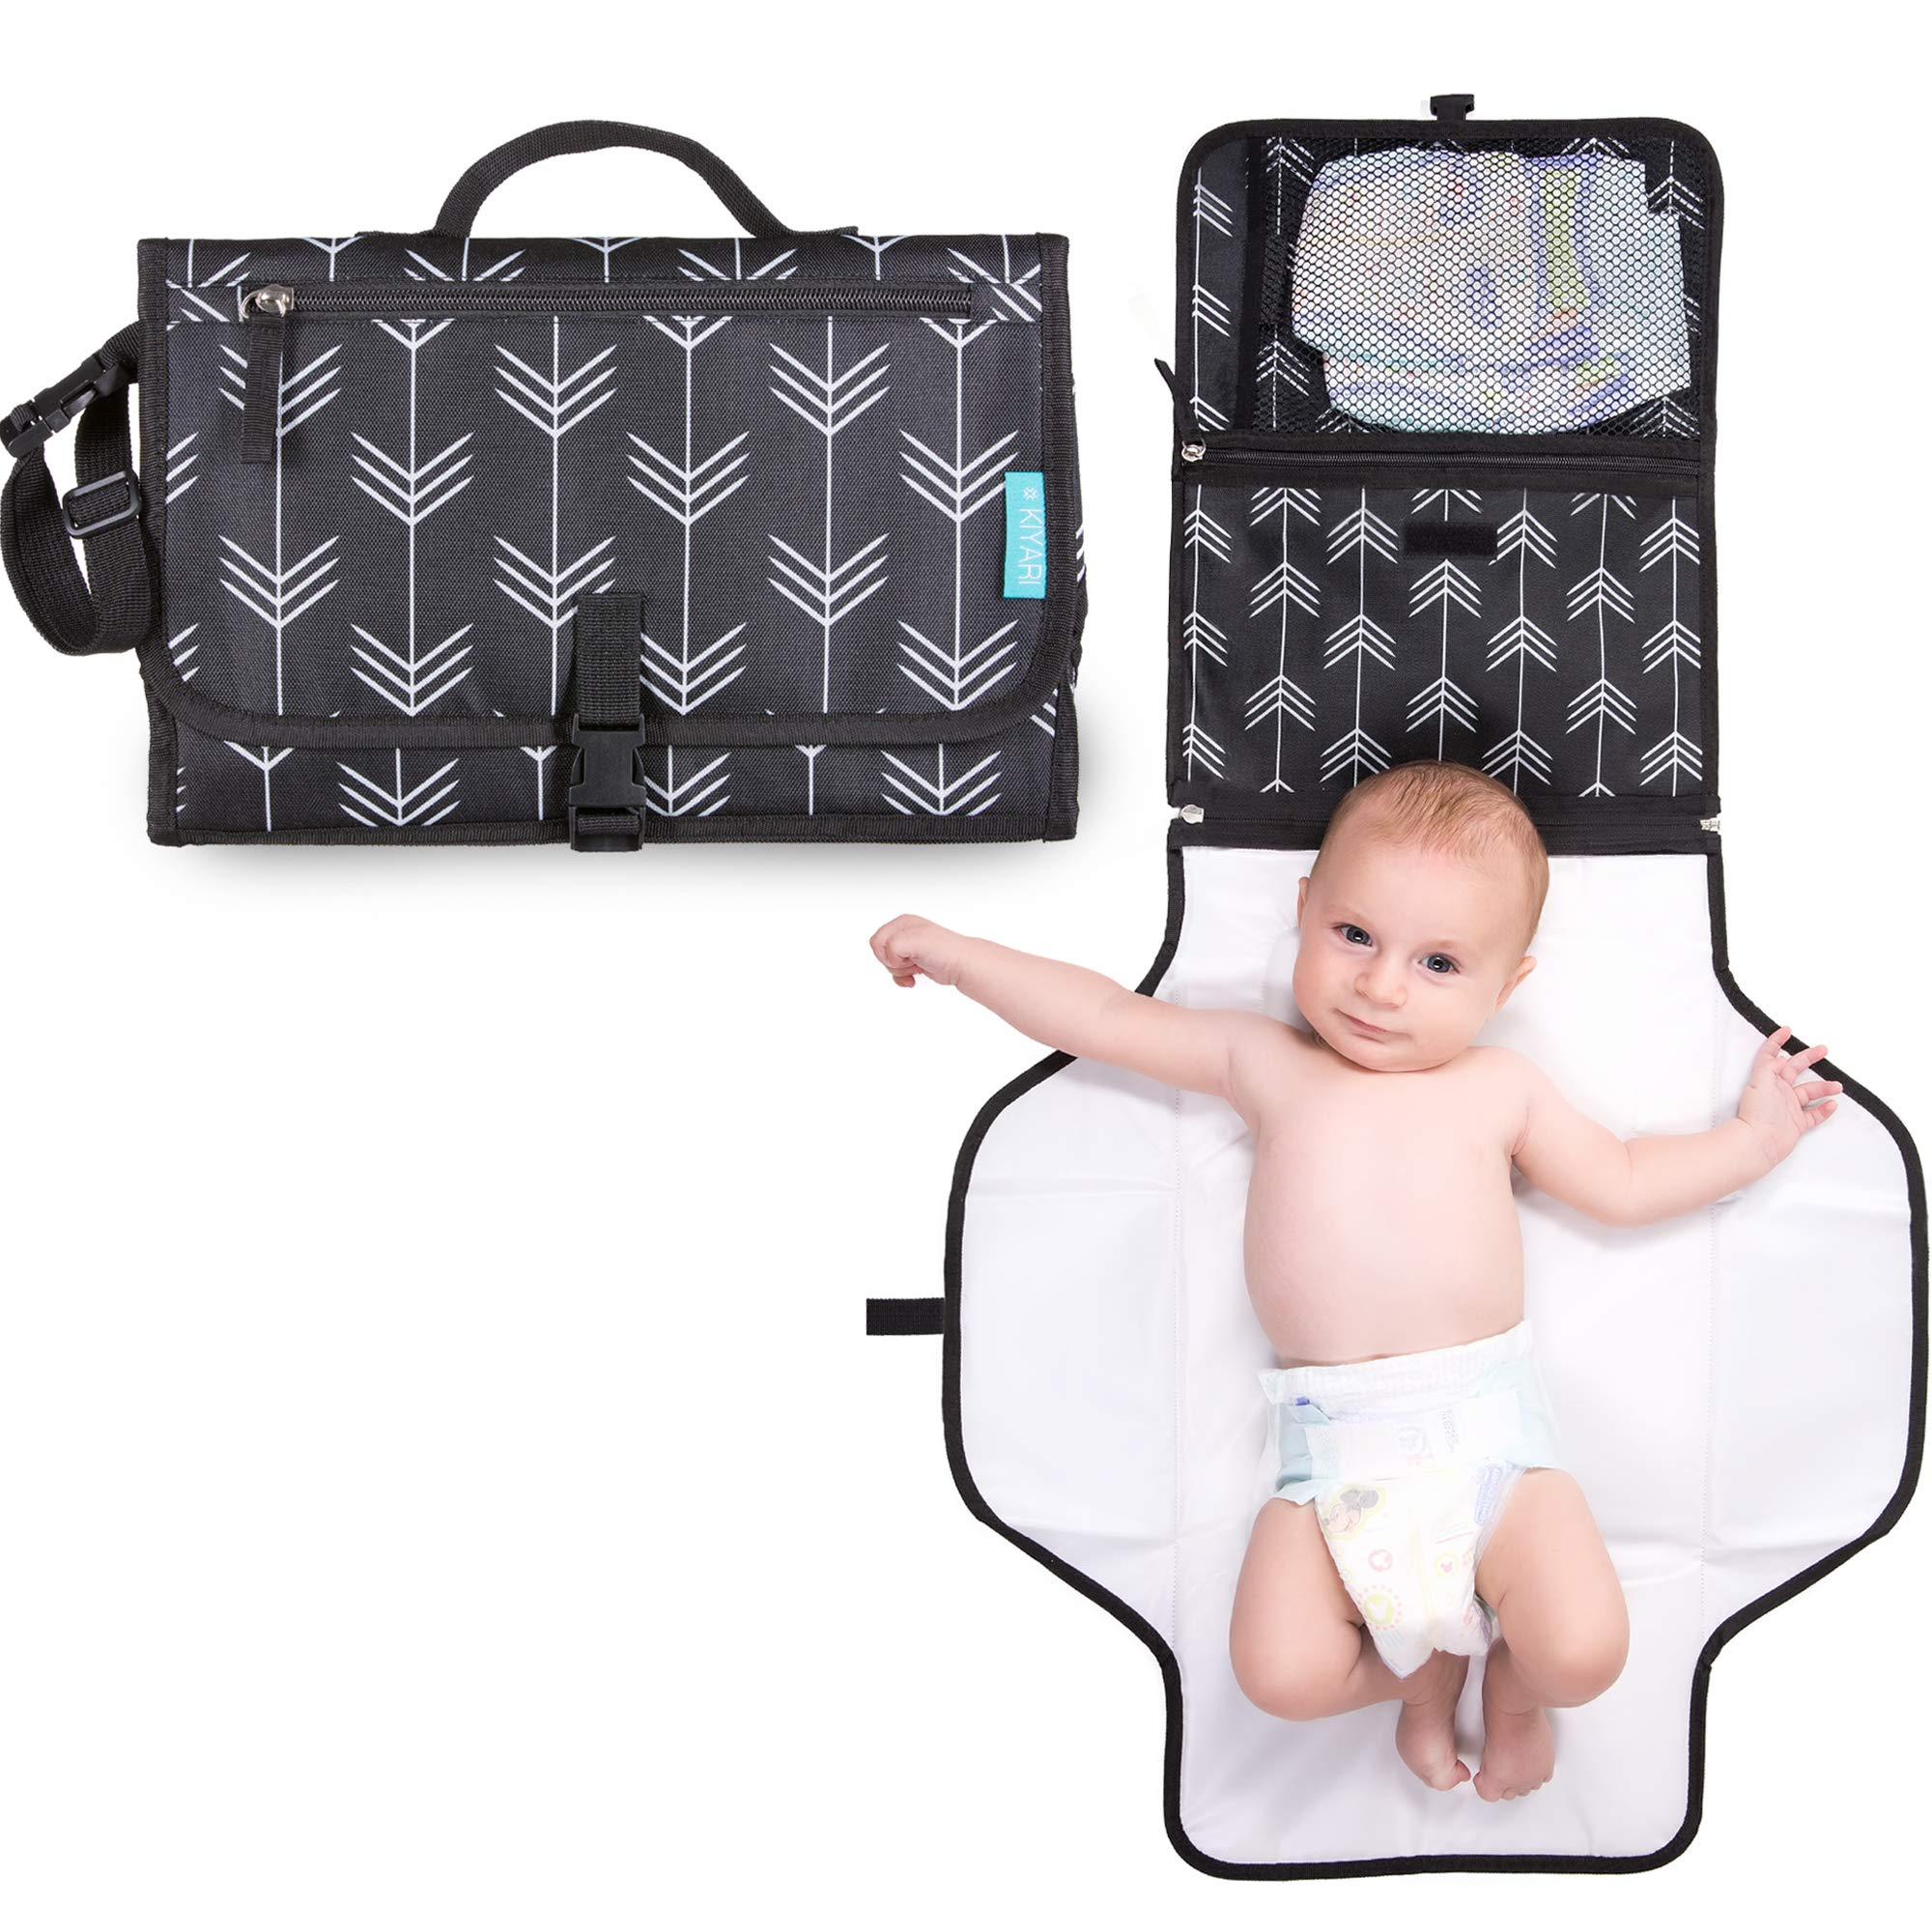 Portable Diaper Changing Pad with Head Pillow - Foldable Travel Diaper Station - Replaces Heavy Diaper Bag - Baby Shower Gift Registry Must Have by Kiyari